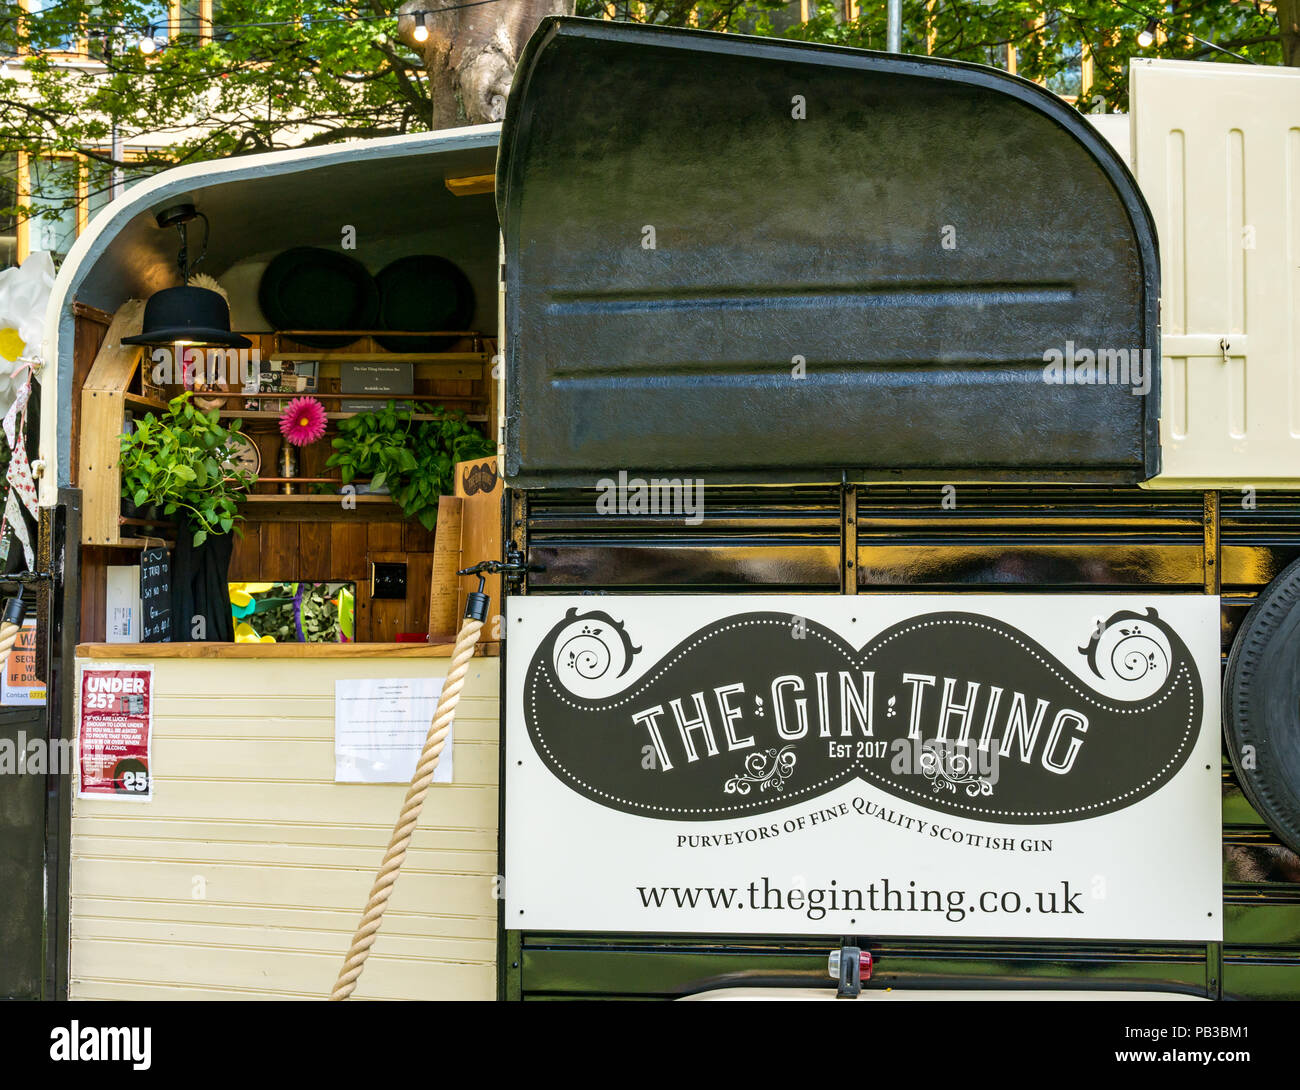 Edinburgh, UK. 26th July 2018. Edinburgh Food Festival 2018 in George Square Gardens, Edinburgh, Scotland, United Kingdom. There are food stalls with over 20 local food and drink producers in the free outdoor event. Scottish Gin Thing quirky van drinks outlet - Stock Image